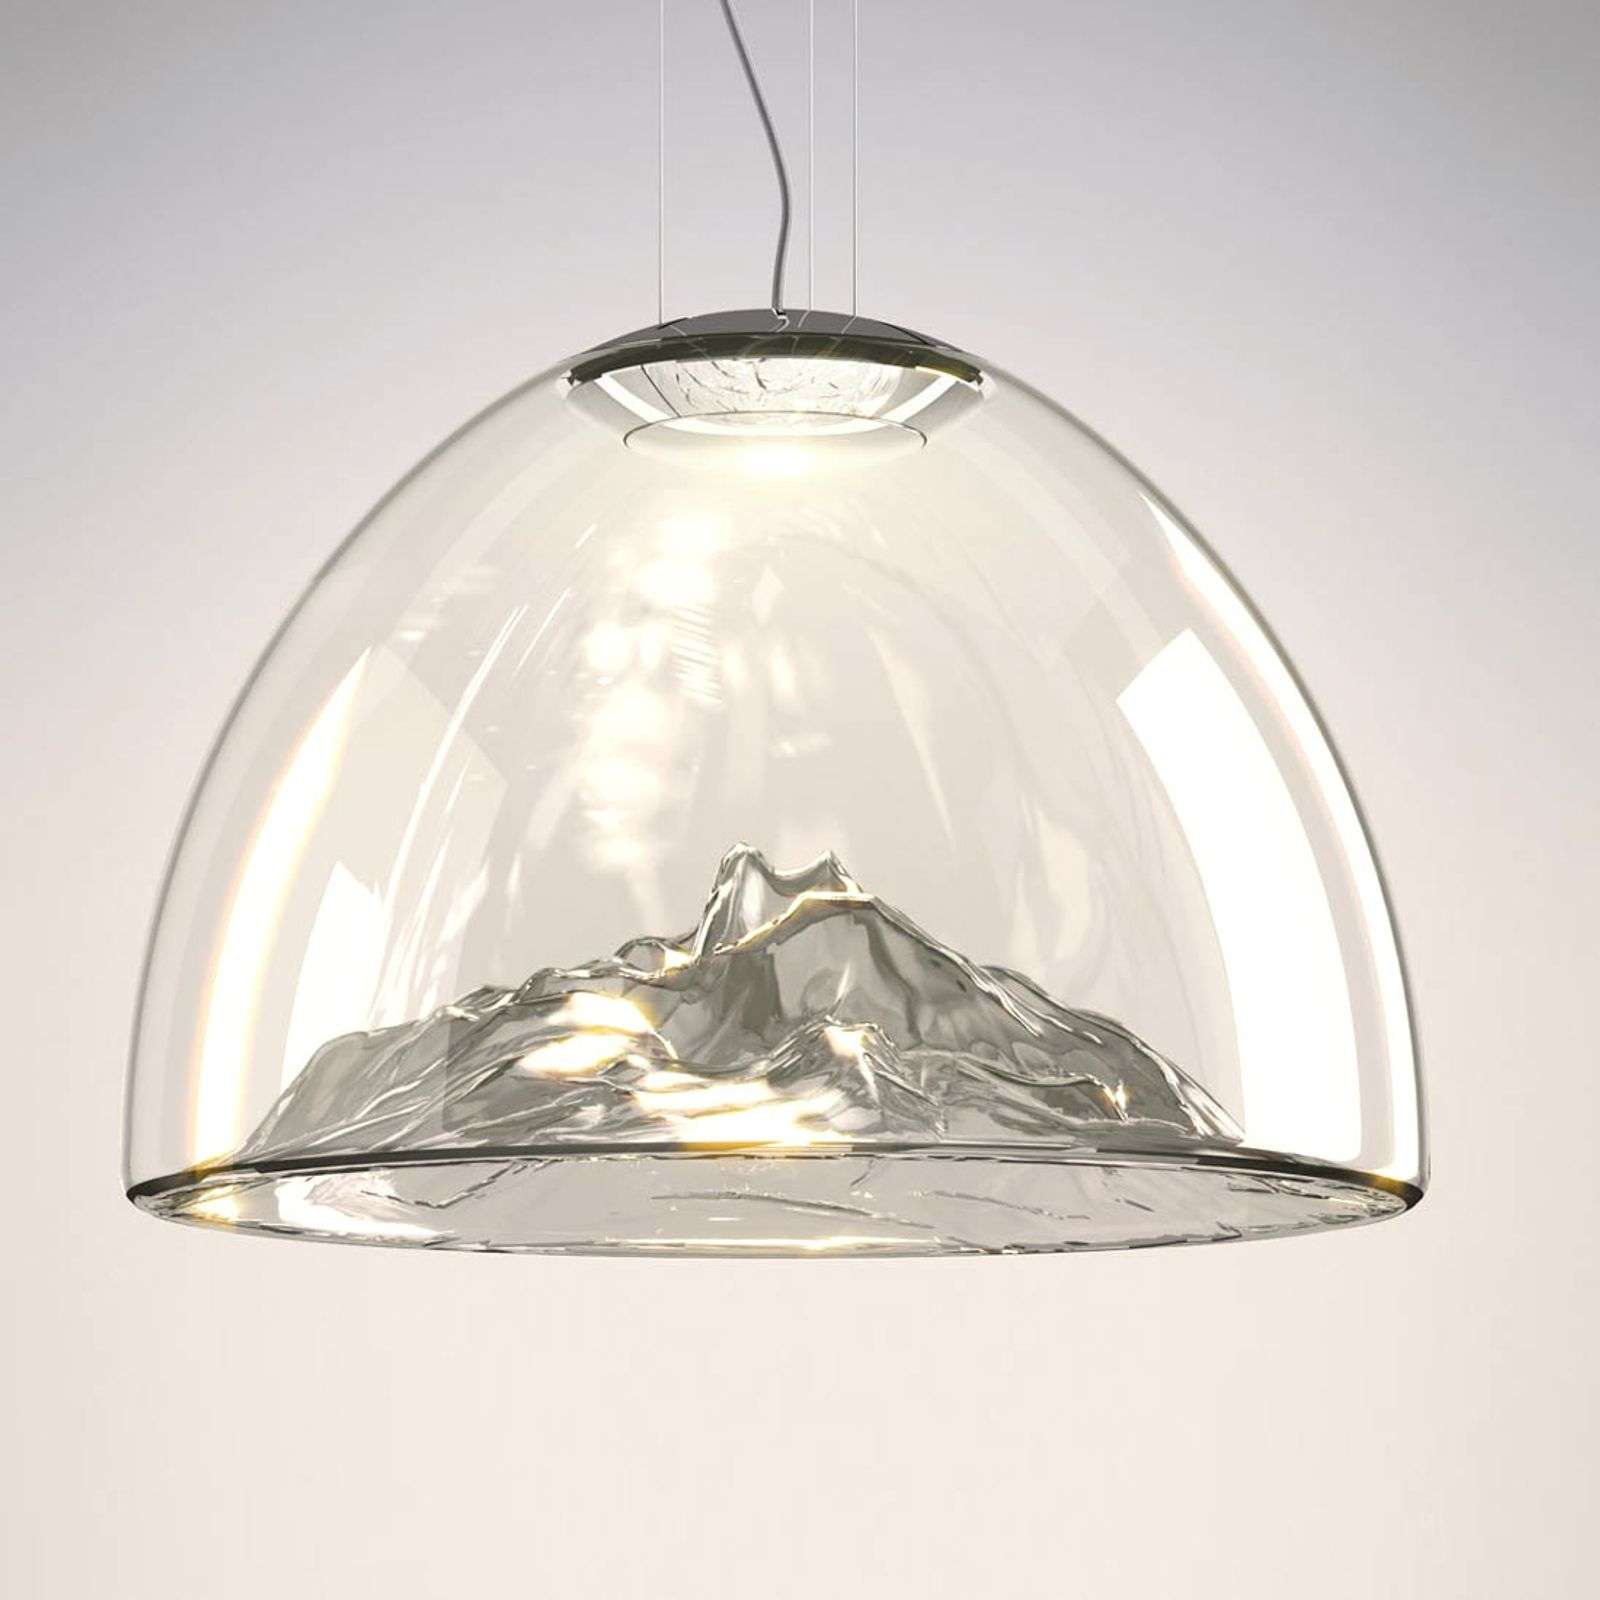 Luxueuse suspension LED de designer Mountain View